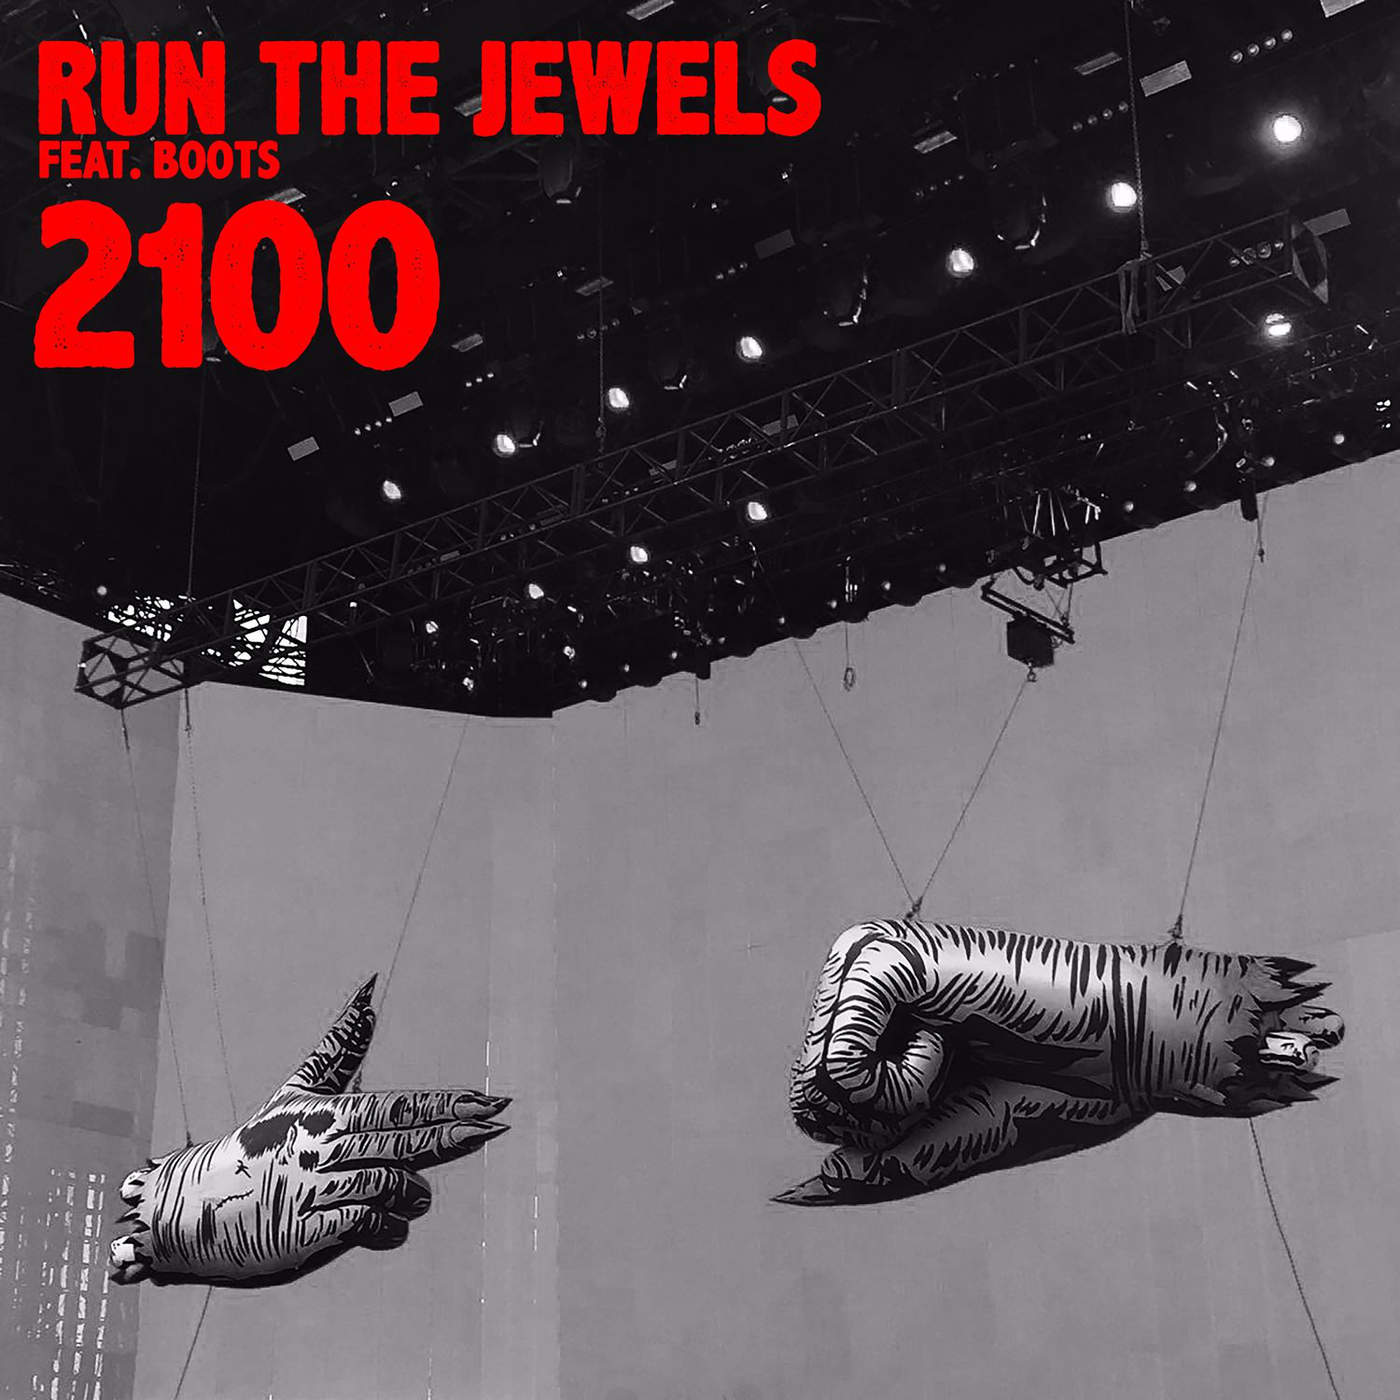 Run The Jewels - 2100 (feat. BOOTS) - Single Cover